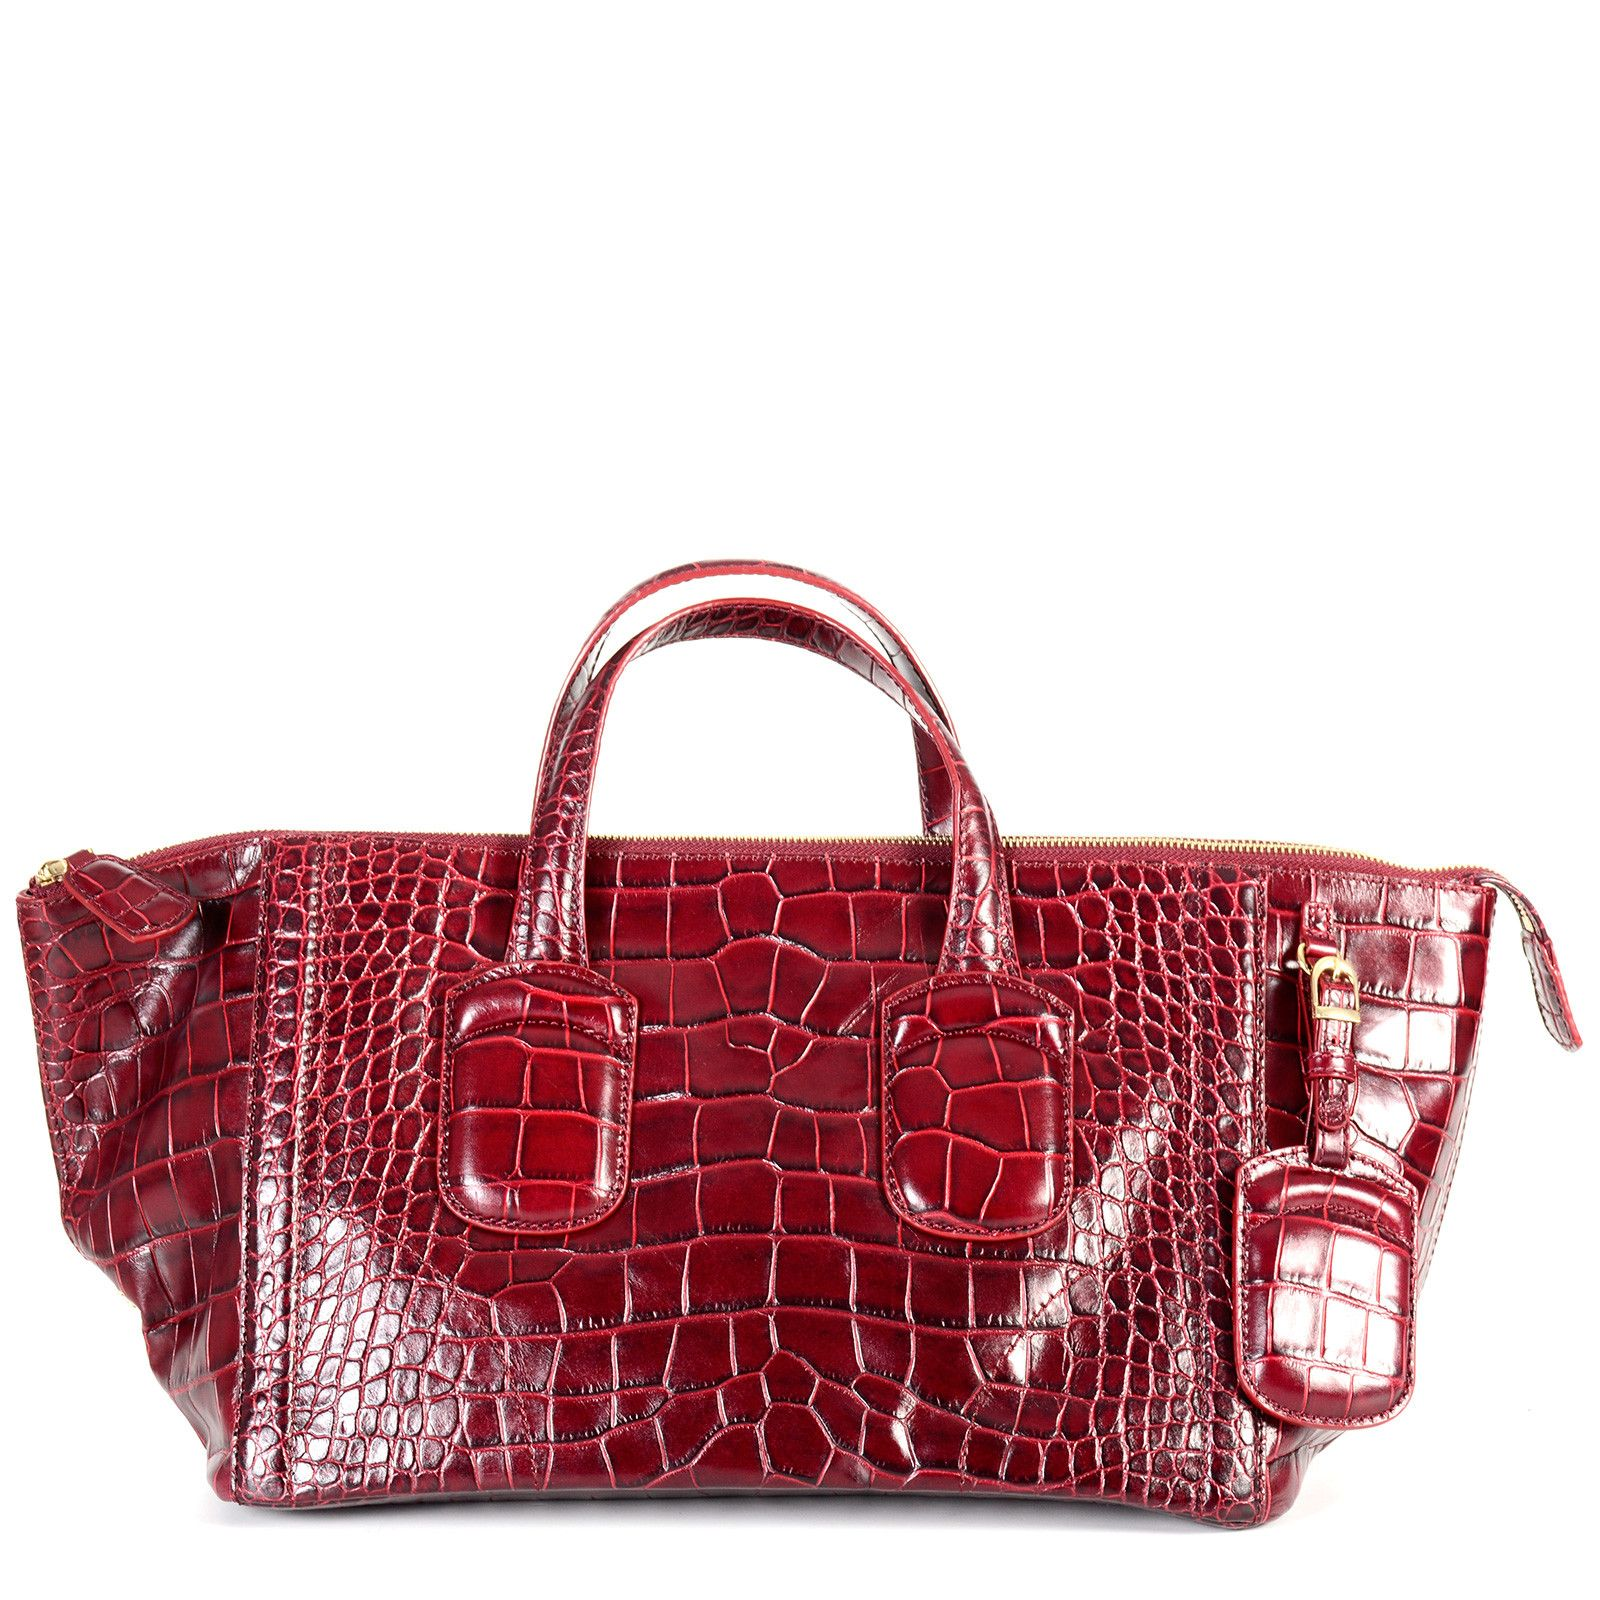 Cheap Real Finishline Original Cheap Online Boston Tote Bag - Only One Szie / Red Max Mara Outlet Excellent Exclusive OQUj6s7B